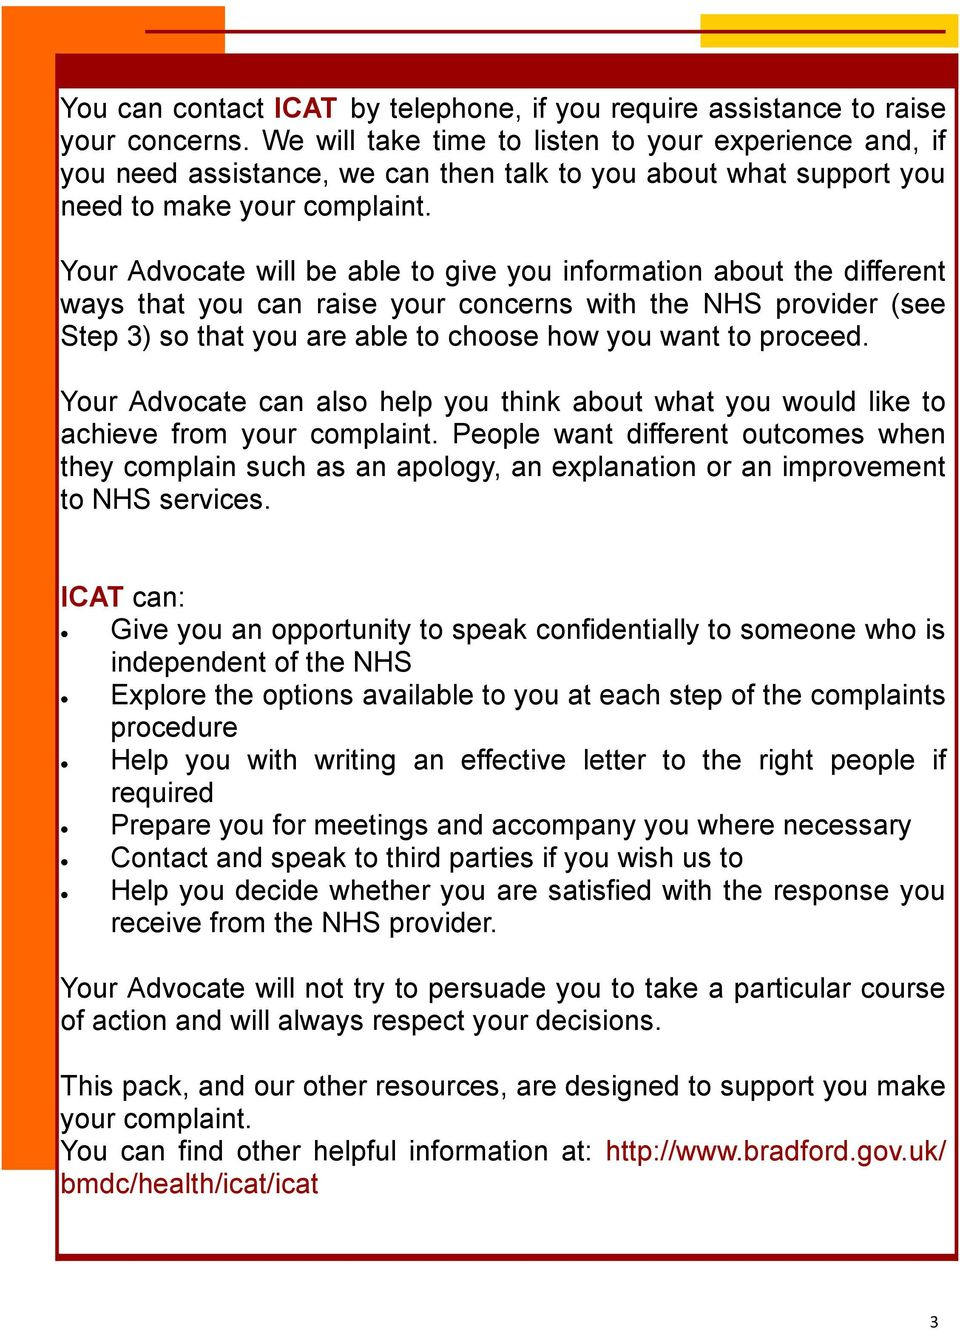 Your Advocate will be able to give you information about the different ways that you can raise your concerns with the NHS provider (see Step 3) so that you are able to choose how you want to proceed.